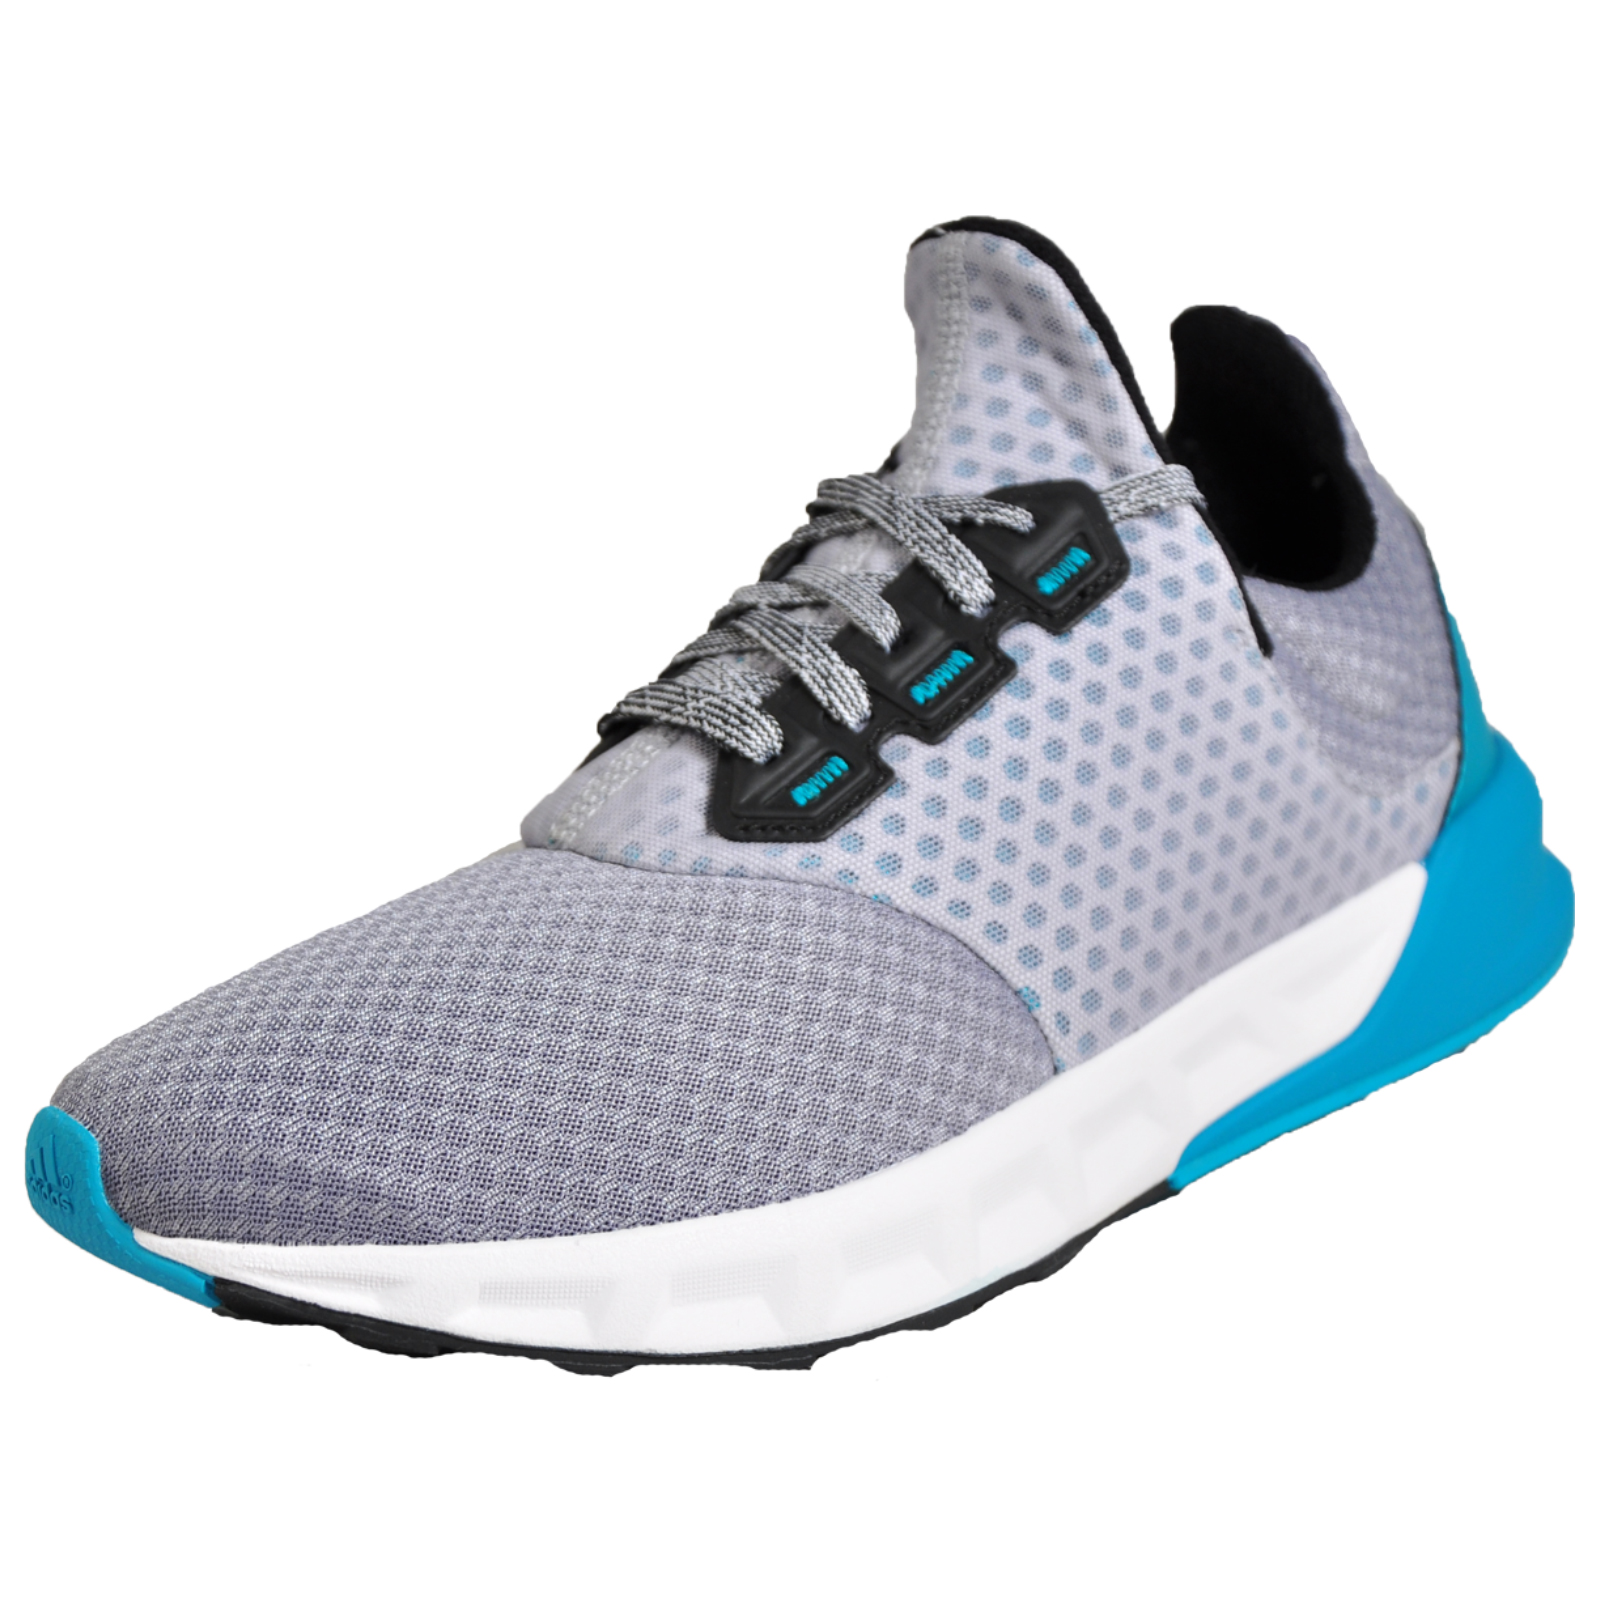 af0664afda8 Adidas Falcon Elite 5 Men s Running Shoes Fitness Gym Workout Trainers Grey